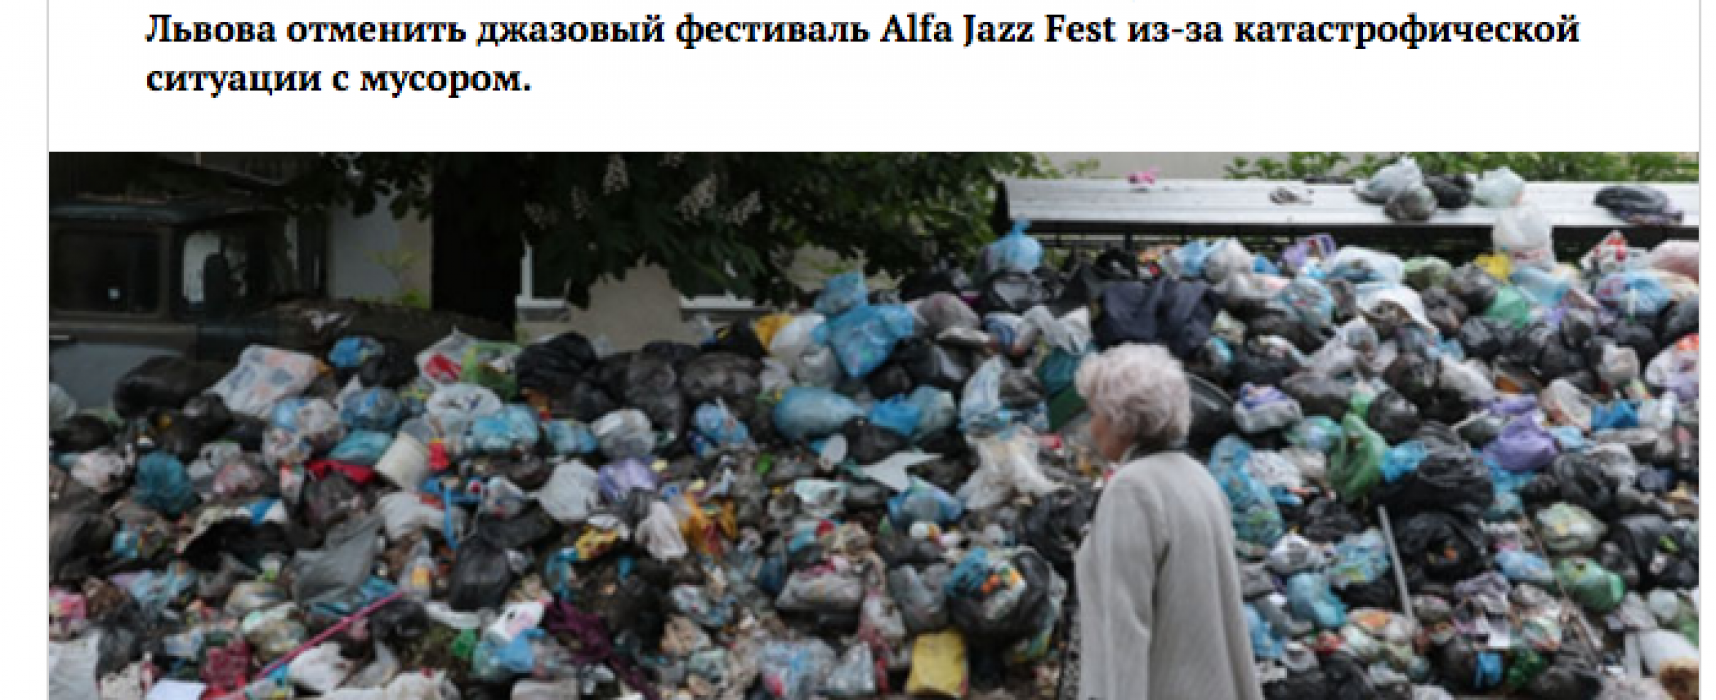 Fake: Lviv Jazz Festival Cancelled Due to Uncollected Garbage